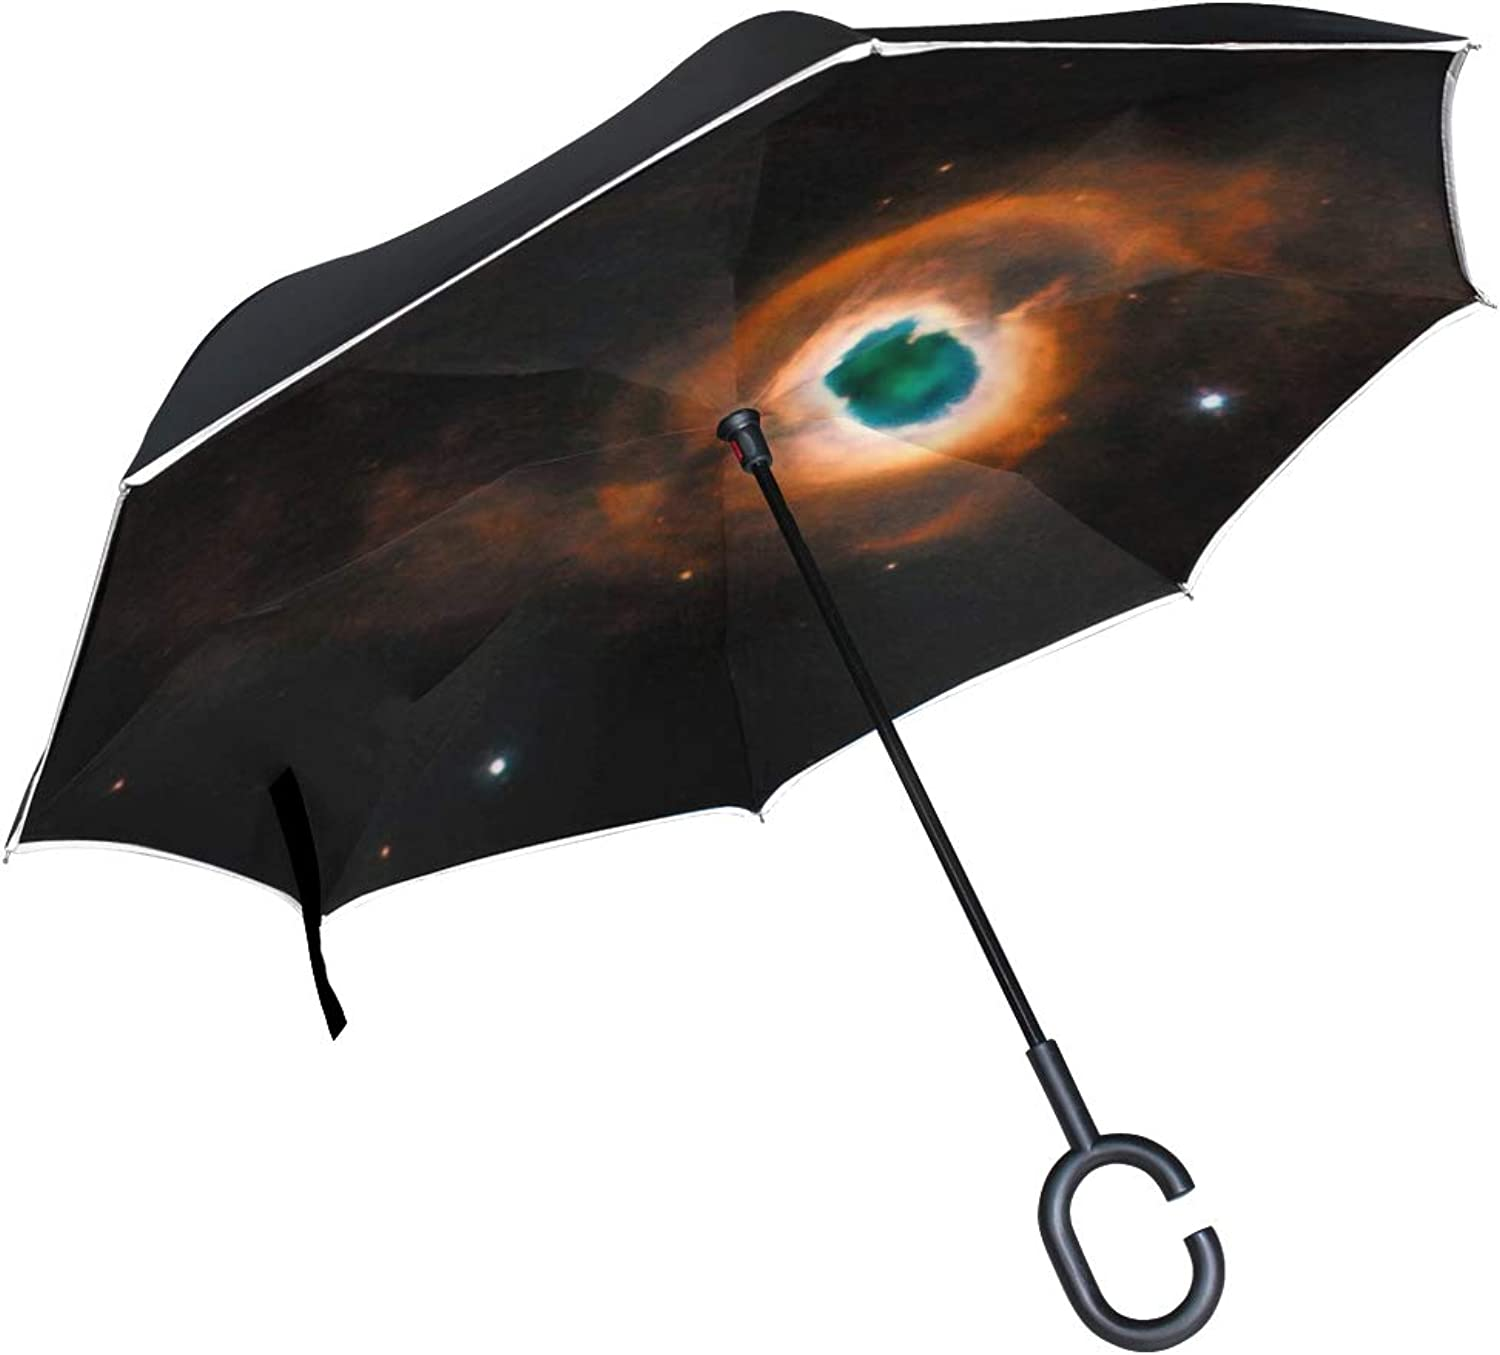 Double Layer Ingreened Kohoutek 4 55 K 4 55 Planetary Fog Umbrellas Reverse Folding Umbrella Windproof Uv Predection Big Straight Umbrella for Car Rain Outdoor with CShaped Handle